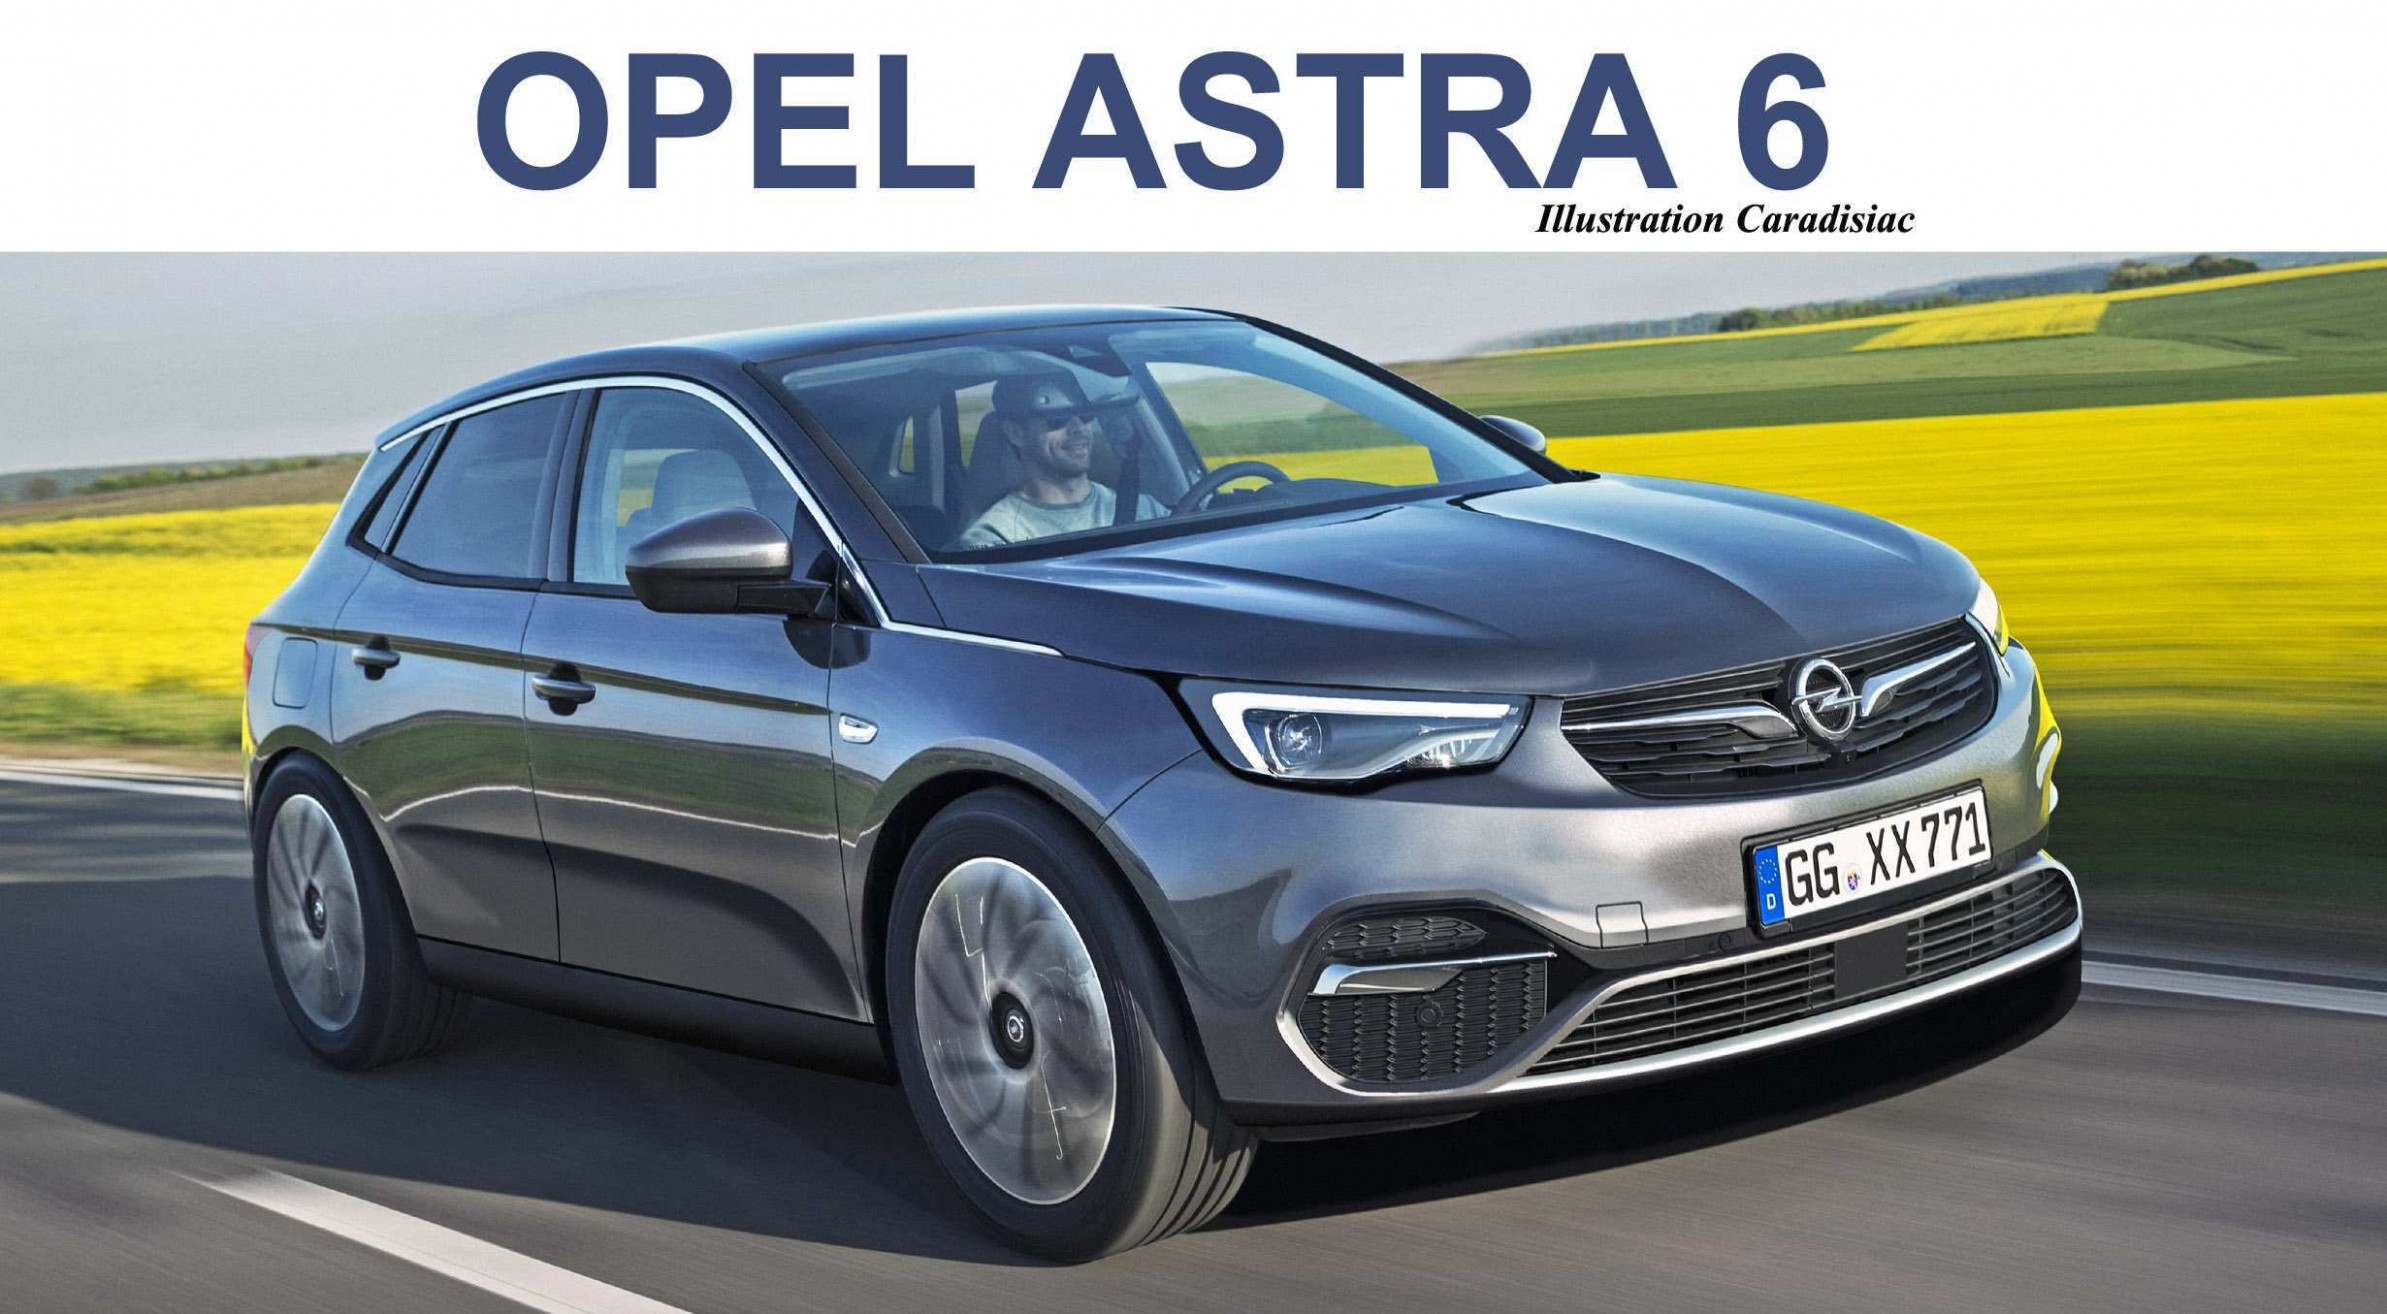 8 New Opel Astra Gtc 8 Release - Car Review 8 : Car Review 8 - 2020 opel astra gtc